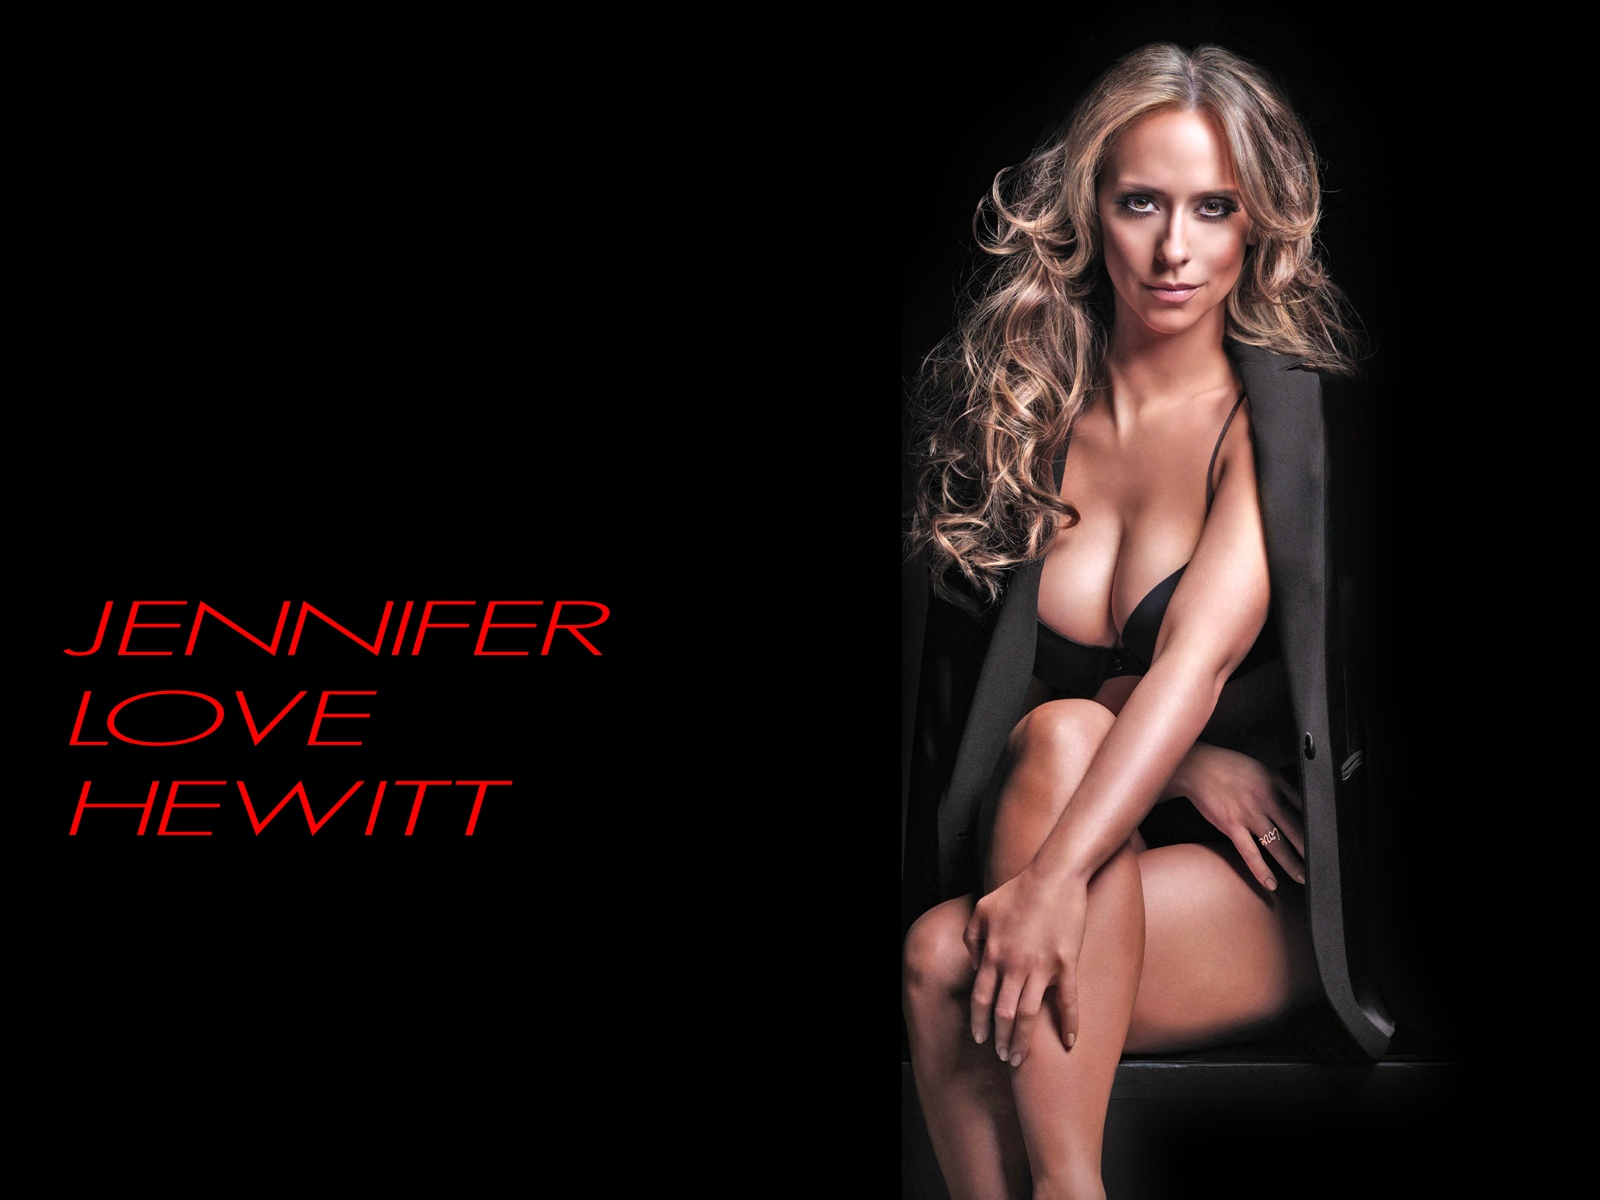 Free Love Hot Wallpaper : Jennifer Love Hewitt Hot and Sexy Wallpapers 1600 and 1920-02 - Gotceleb